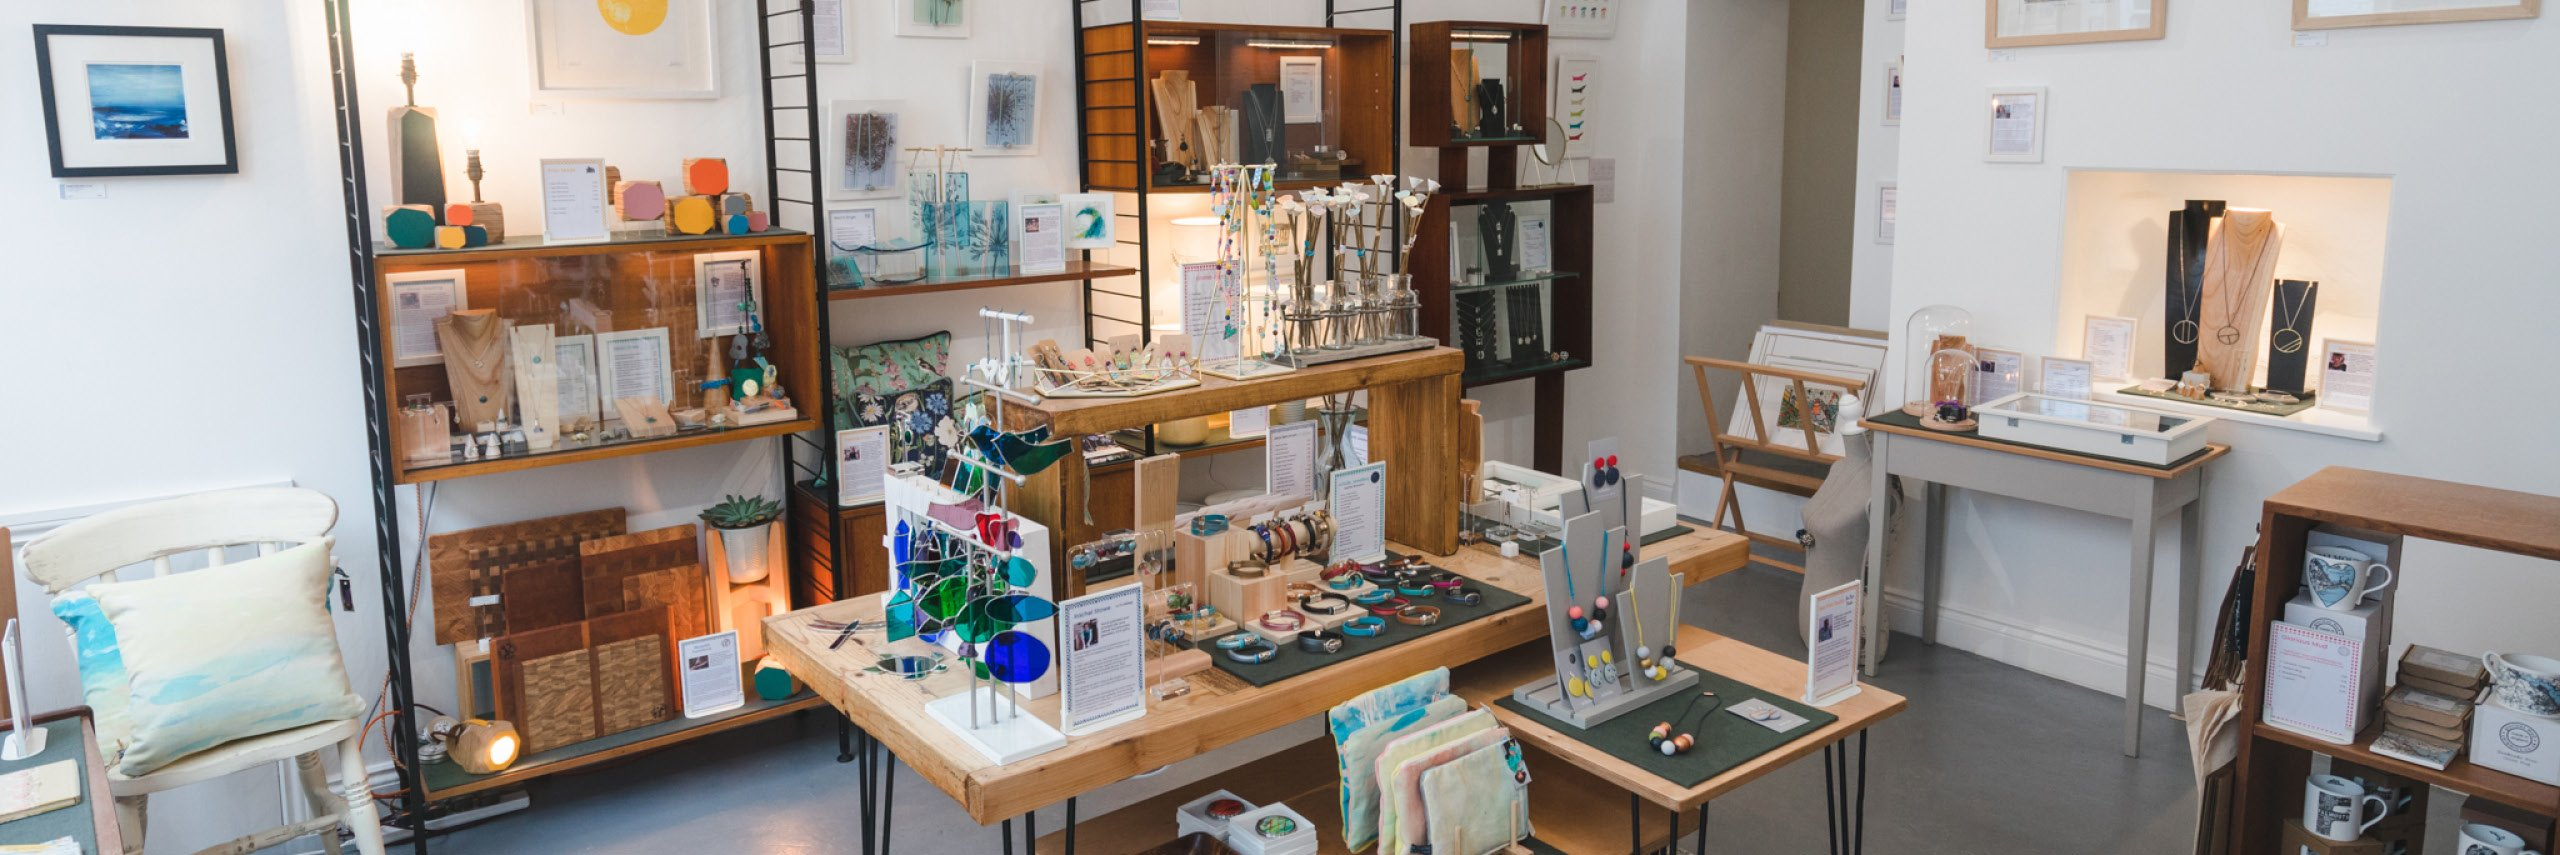 Inside the Inspire Makers shop